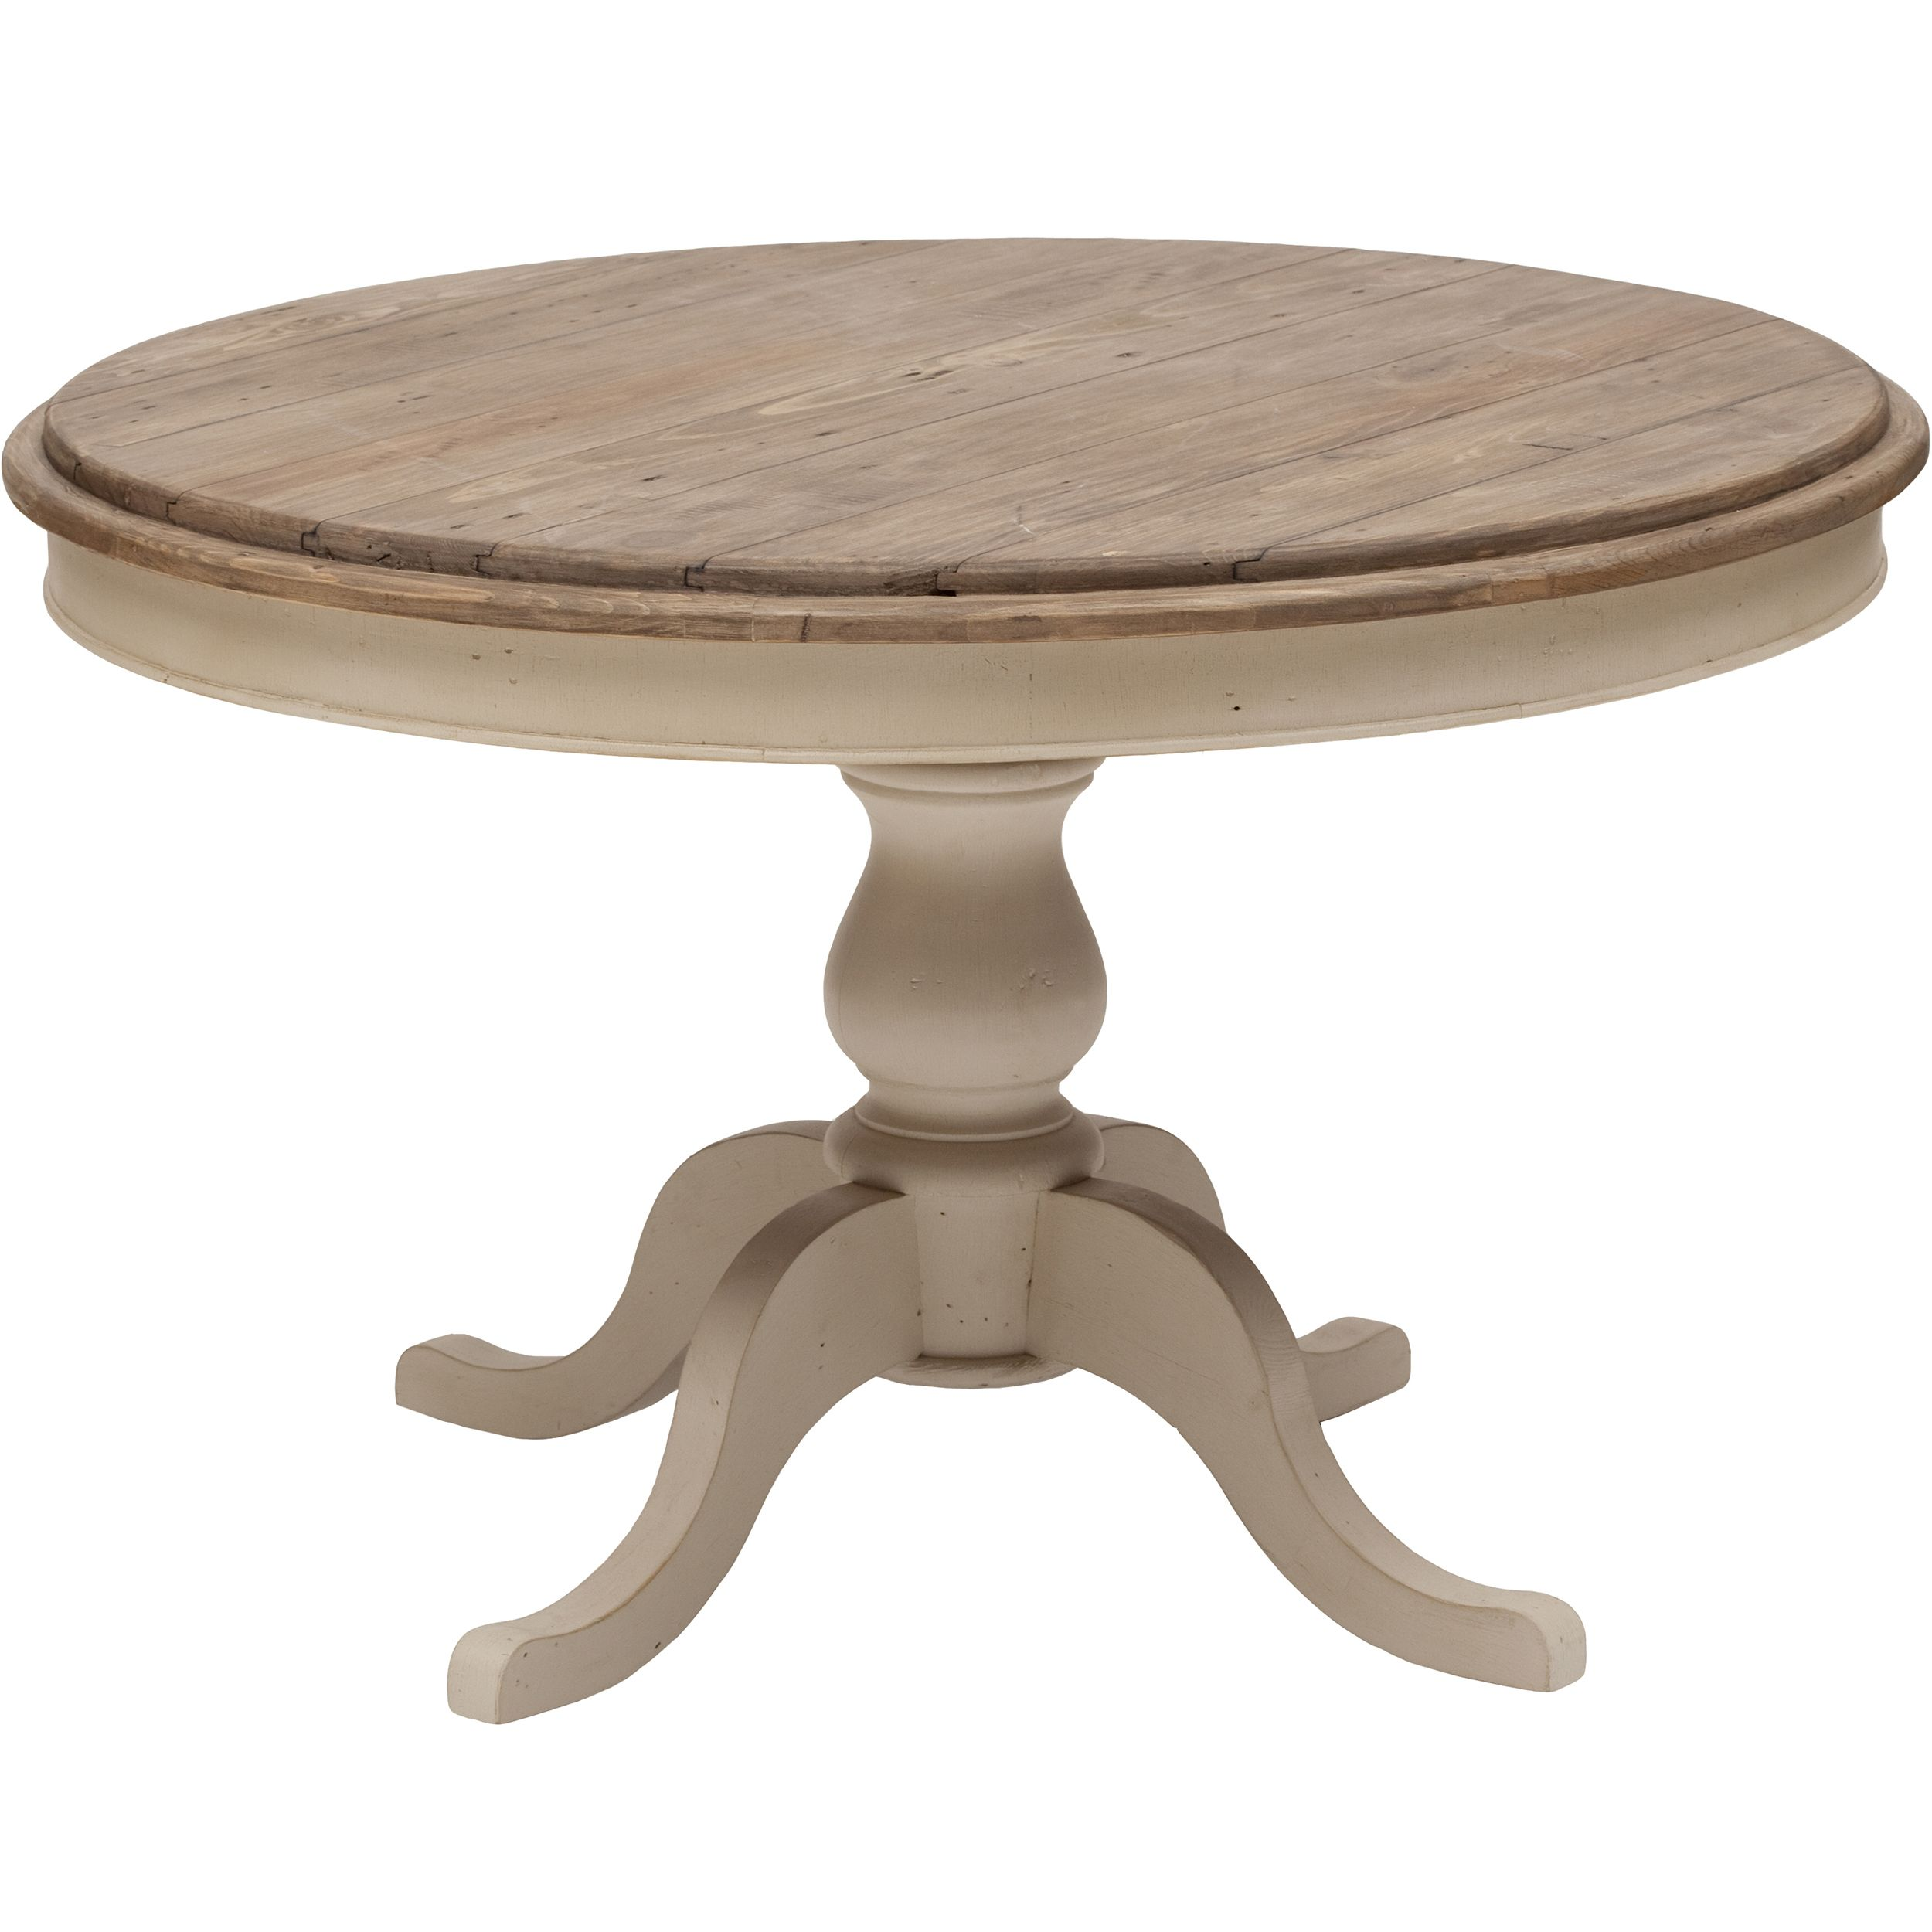 The Cornwall Round Dining Table 47 Takes Inspiration From The